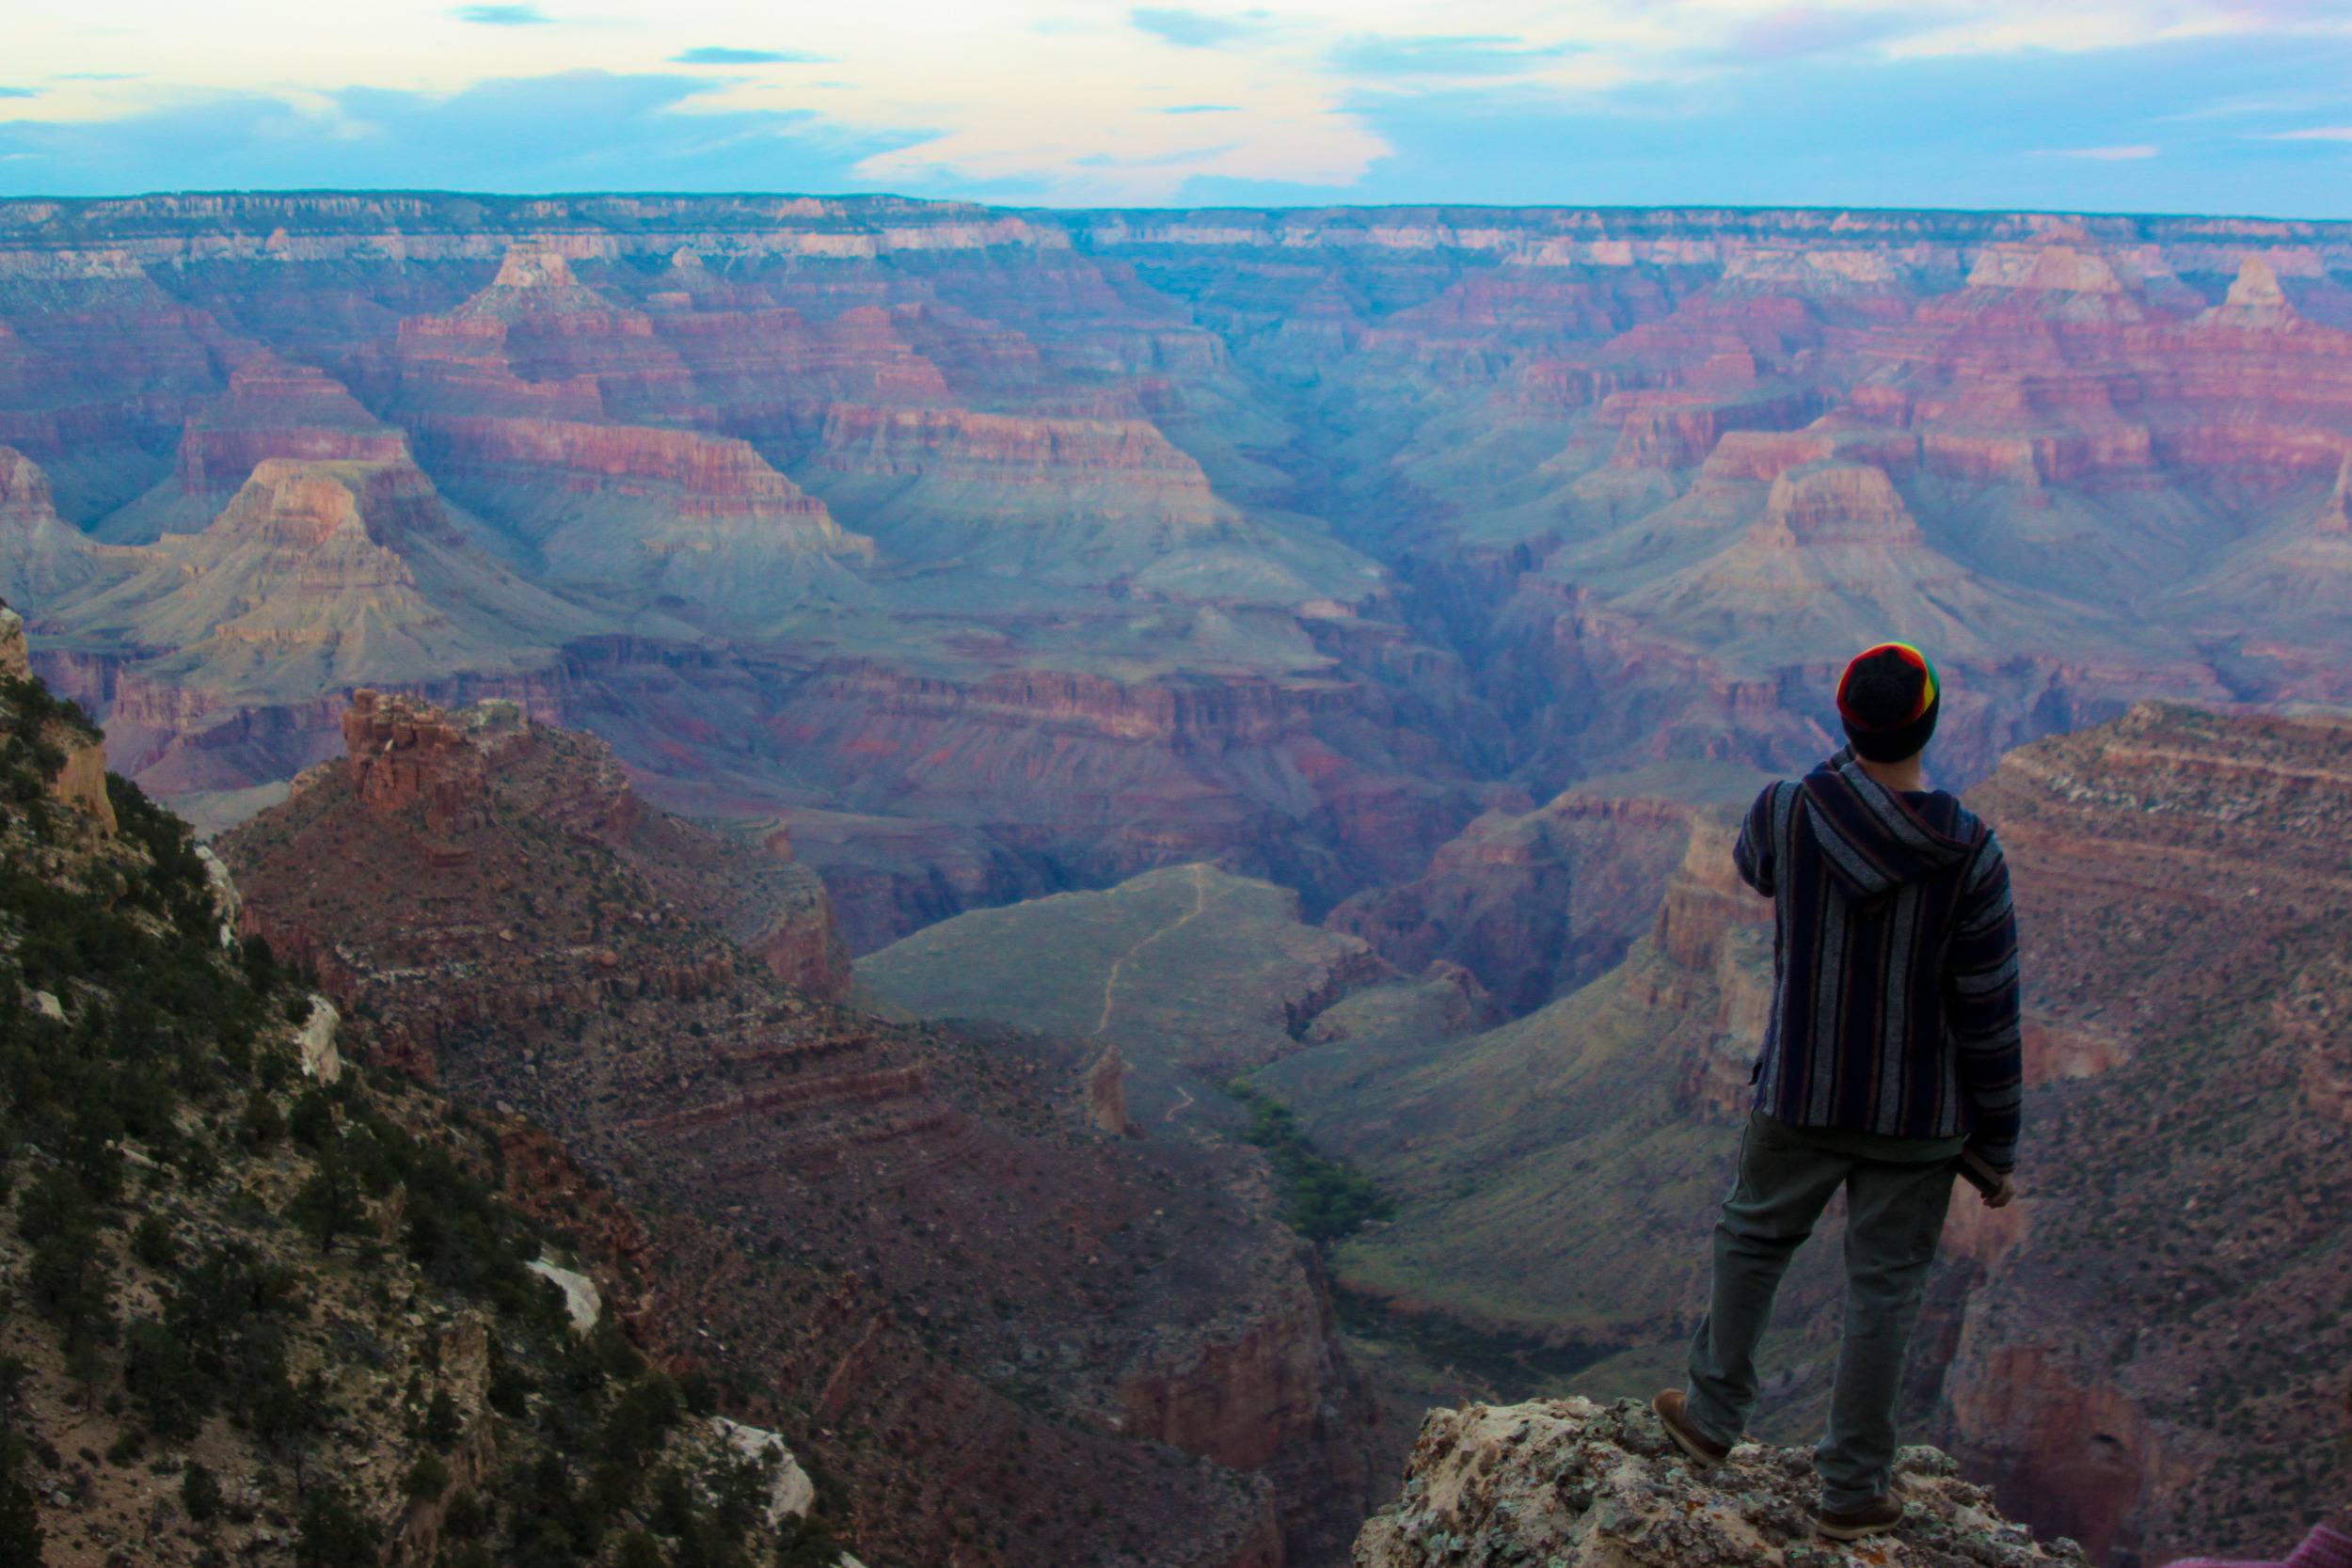 mat-contemplates-the-canyon_8147062813_o.jpg